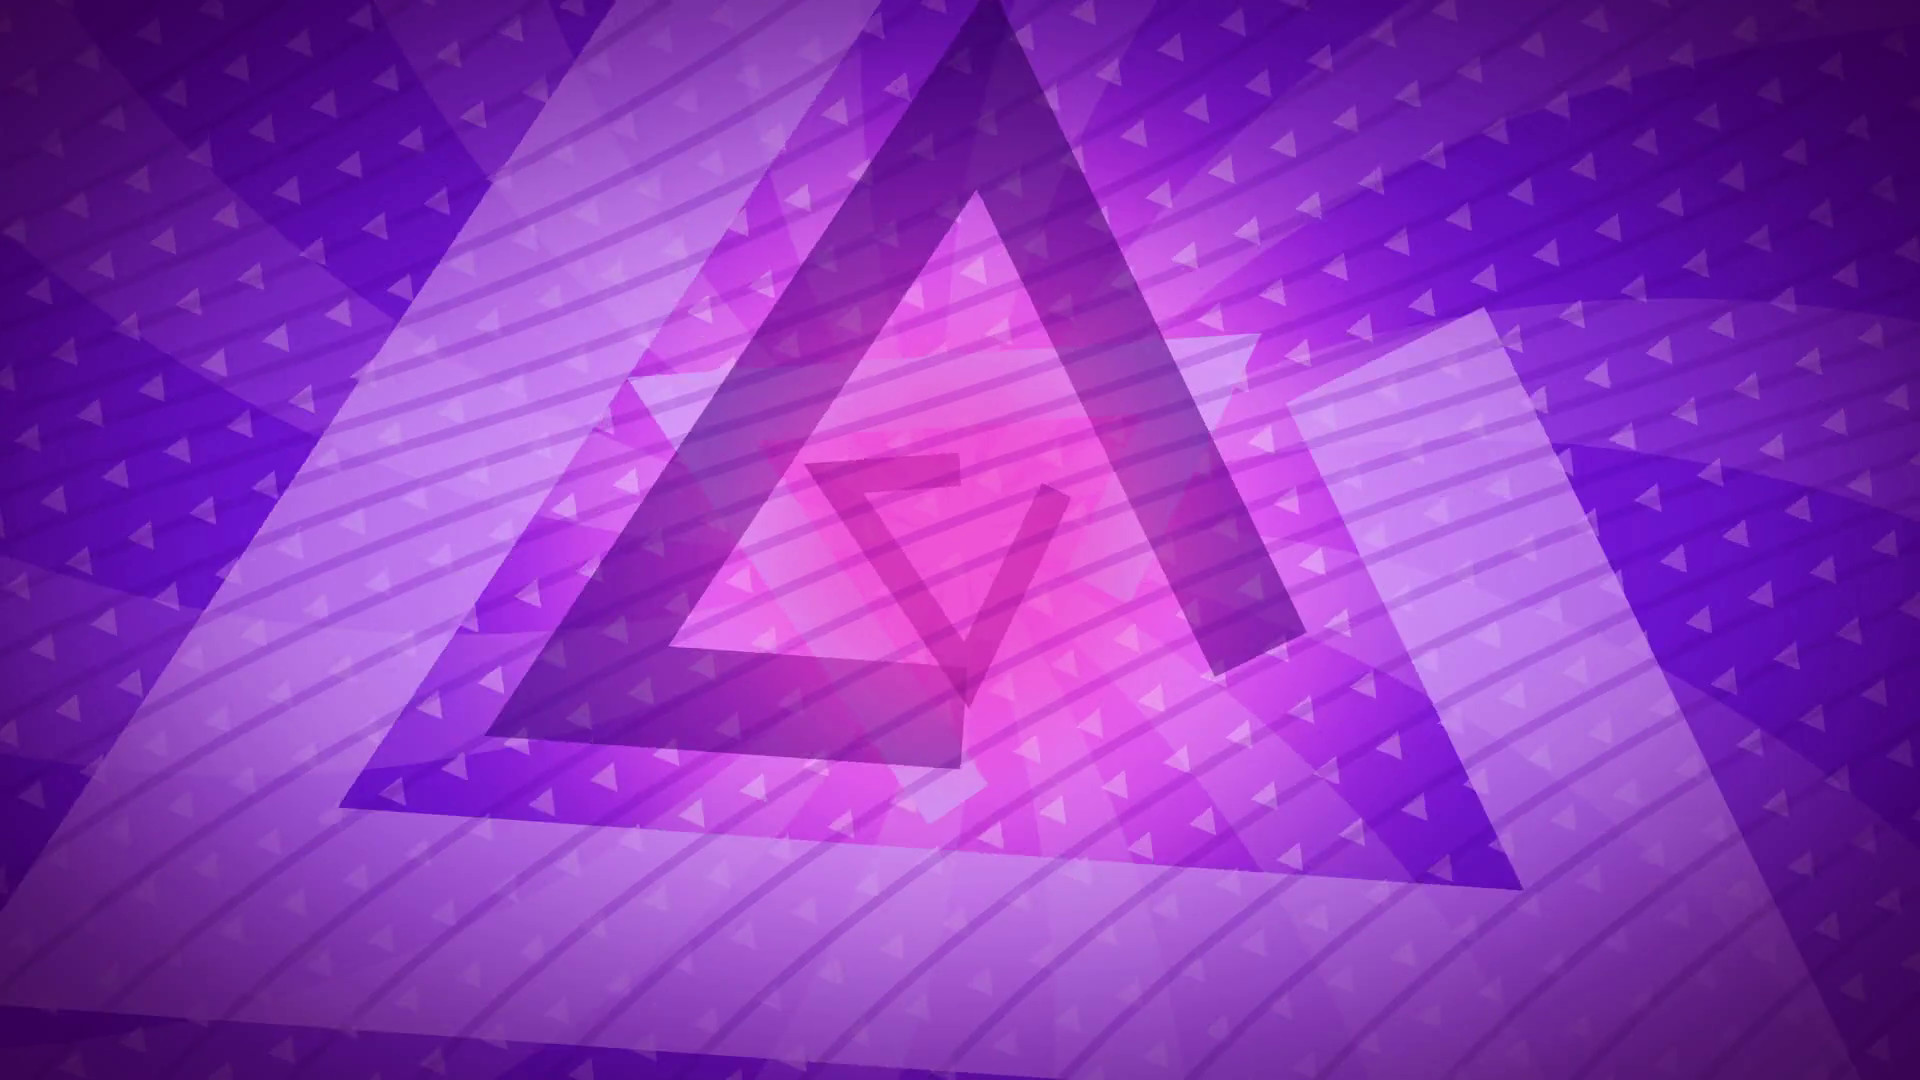 Subscription Library purple triangles Abstract Background Animation loop  for your logo or text. Technology Background. Futuristic